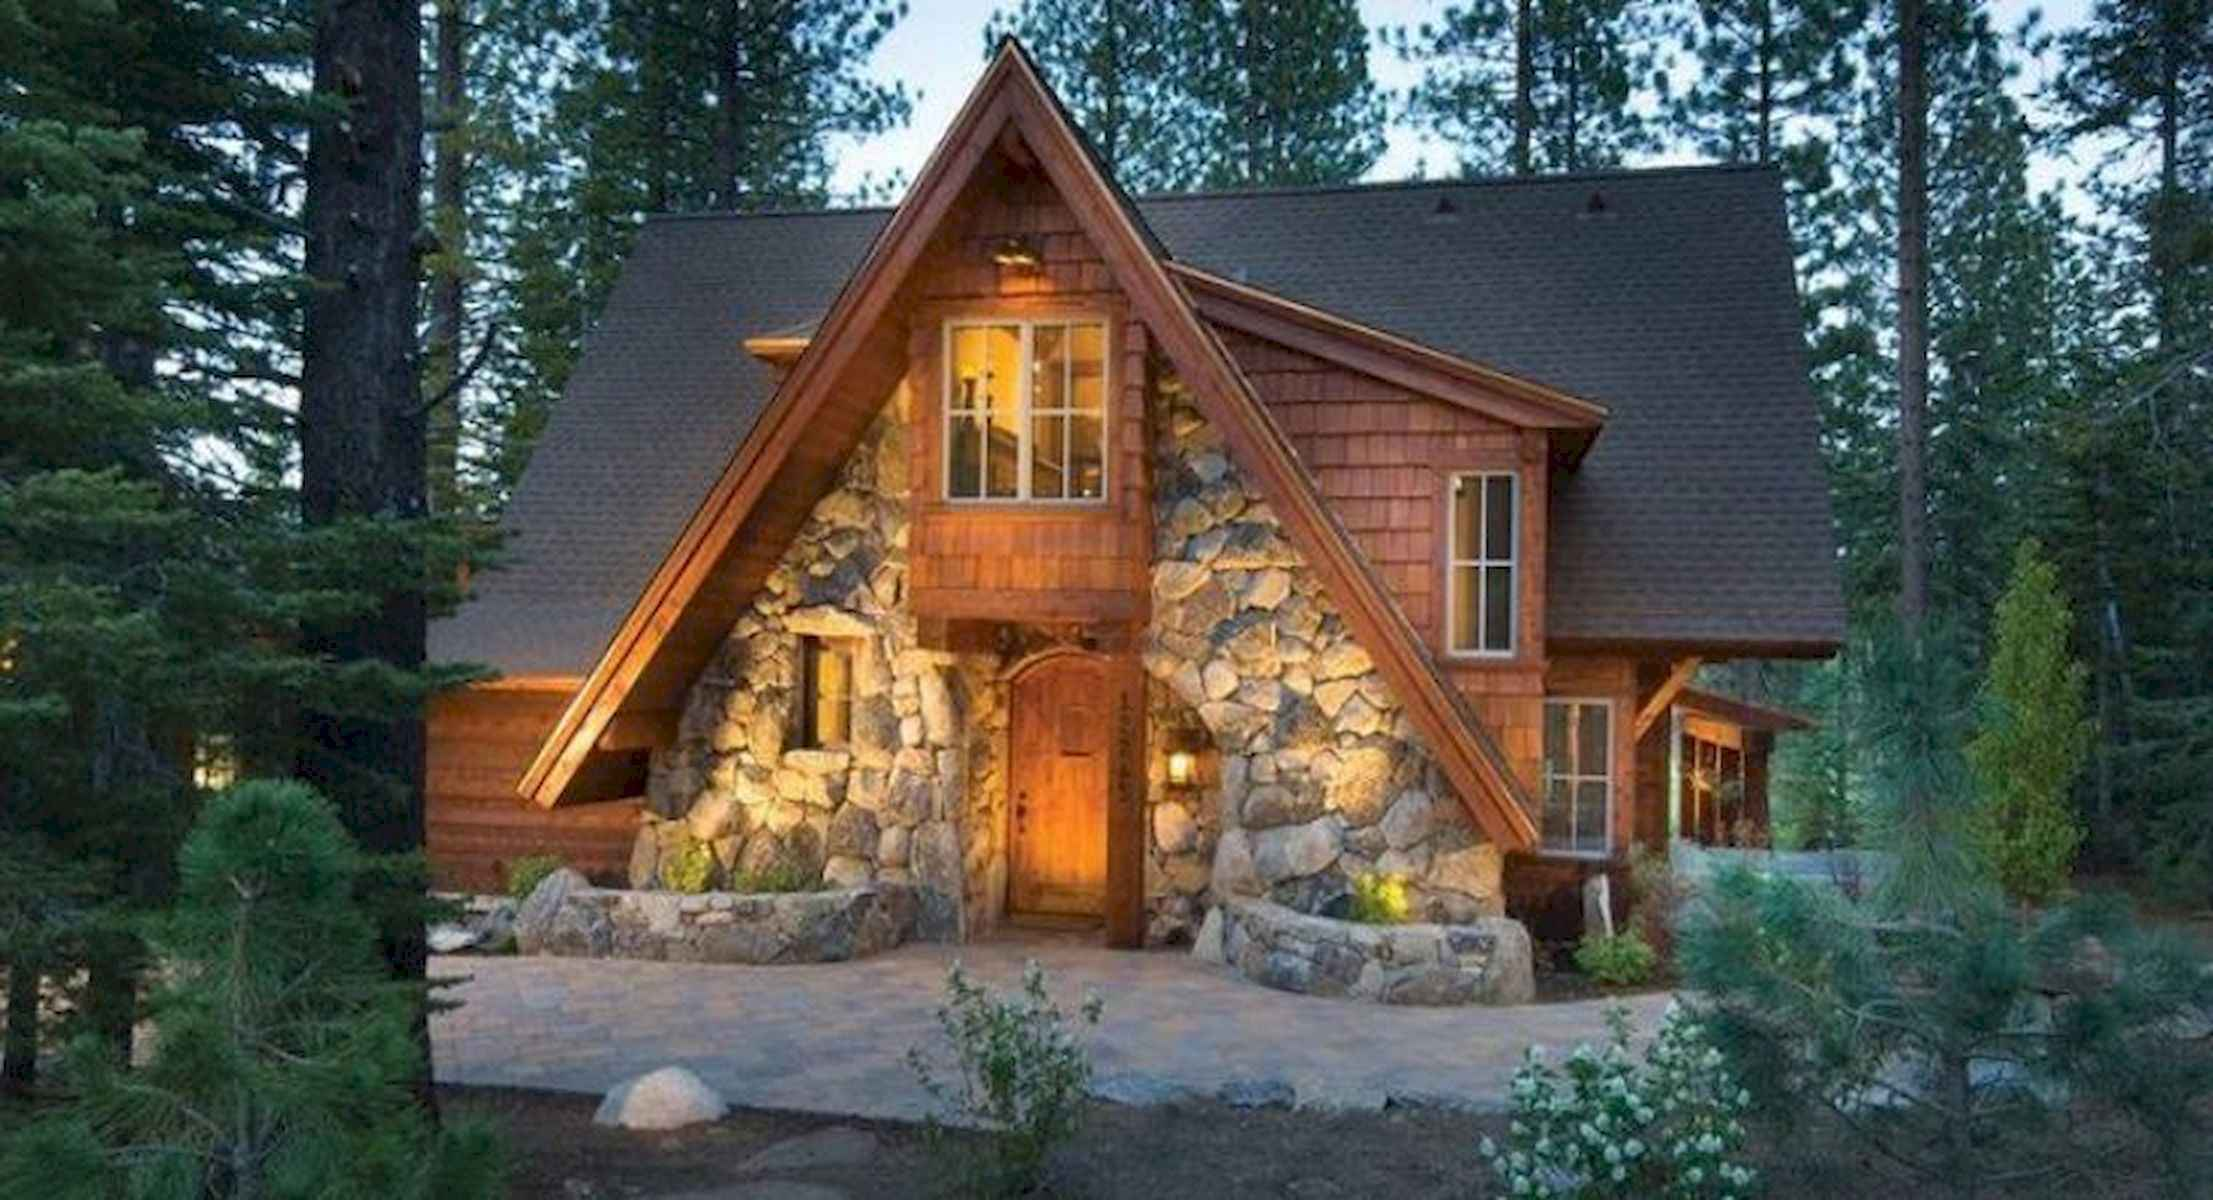 60 Rustic Log Cabin Homes Plans Design Ideas And Remodel (39)